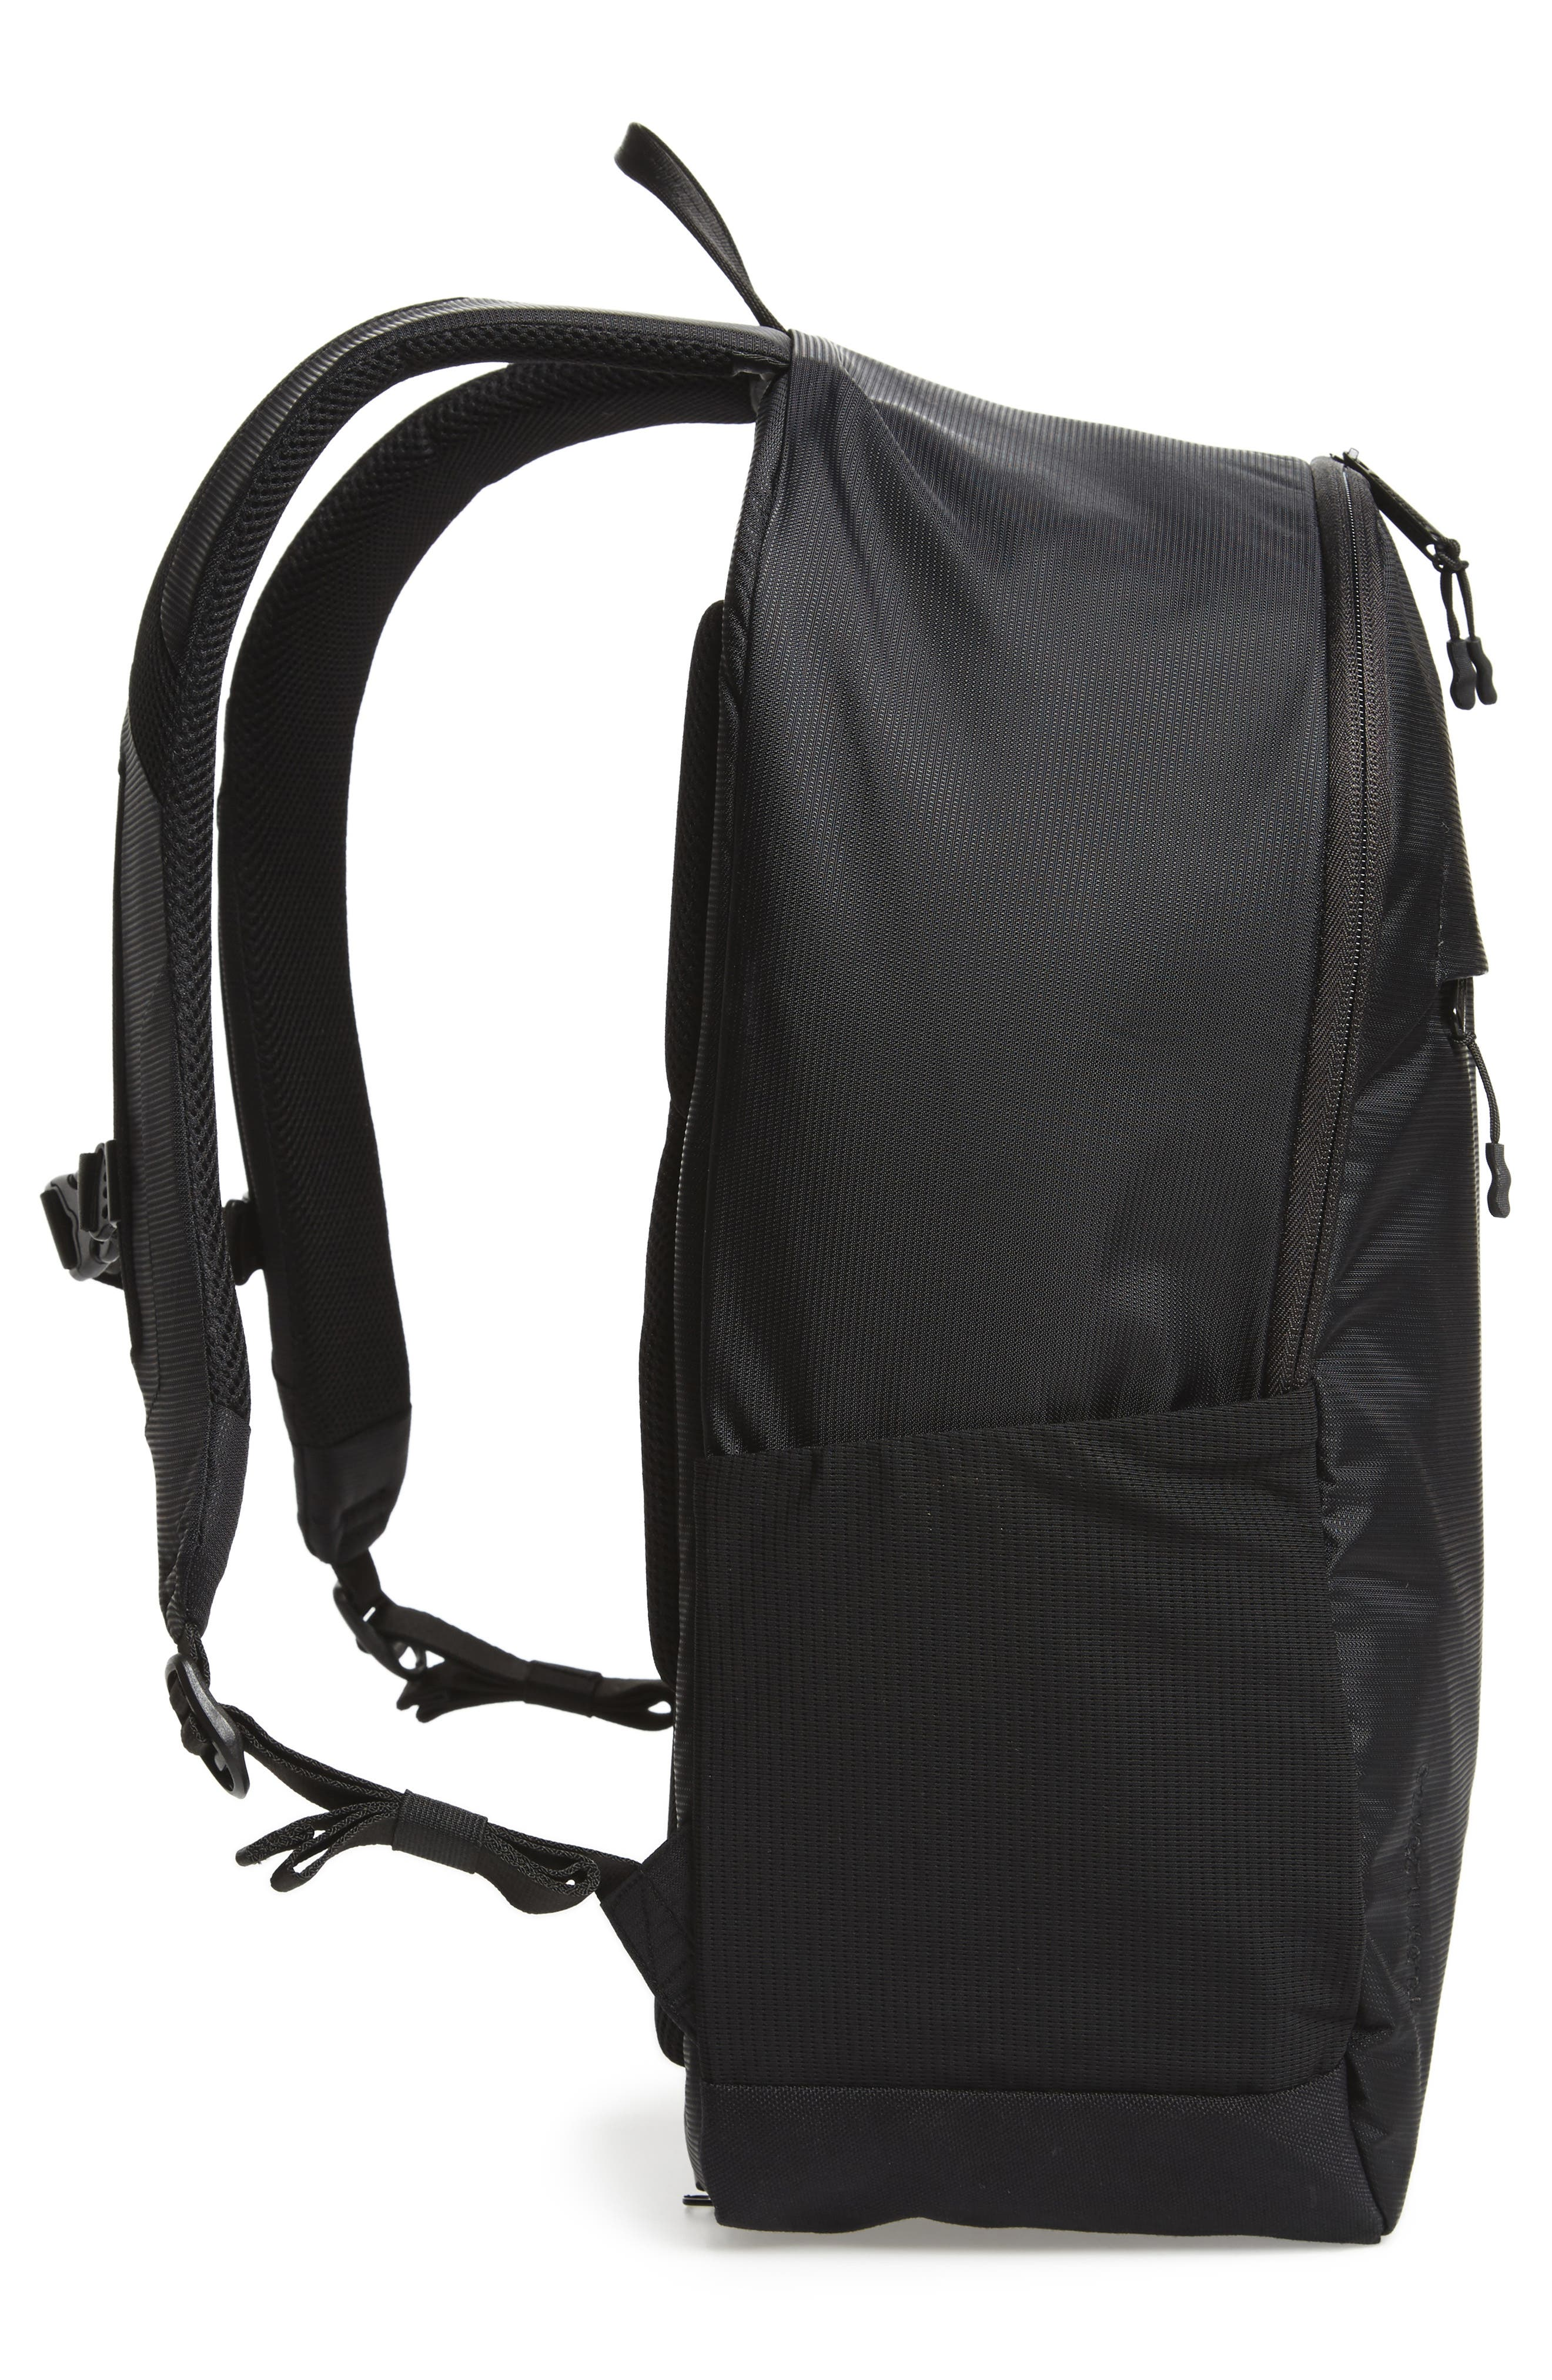 Mammoth Trail Backpack,                             Alternate thumbnail 4, color,                             Black